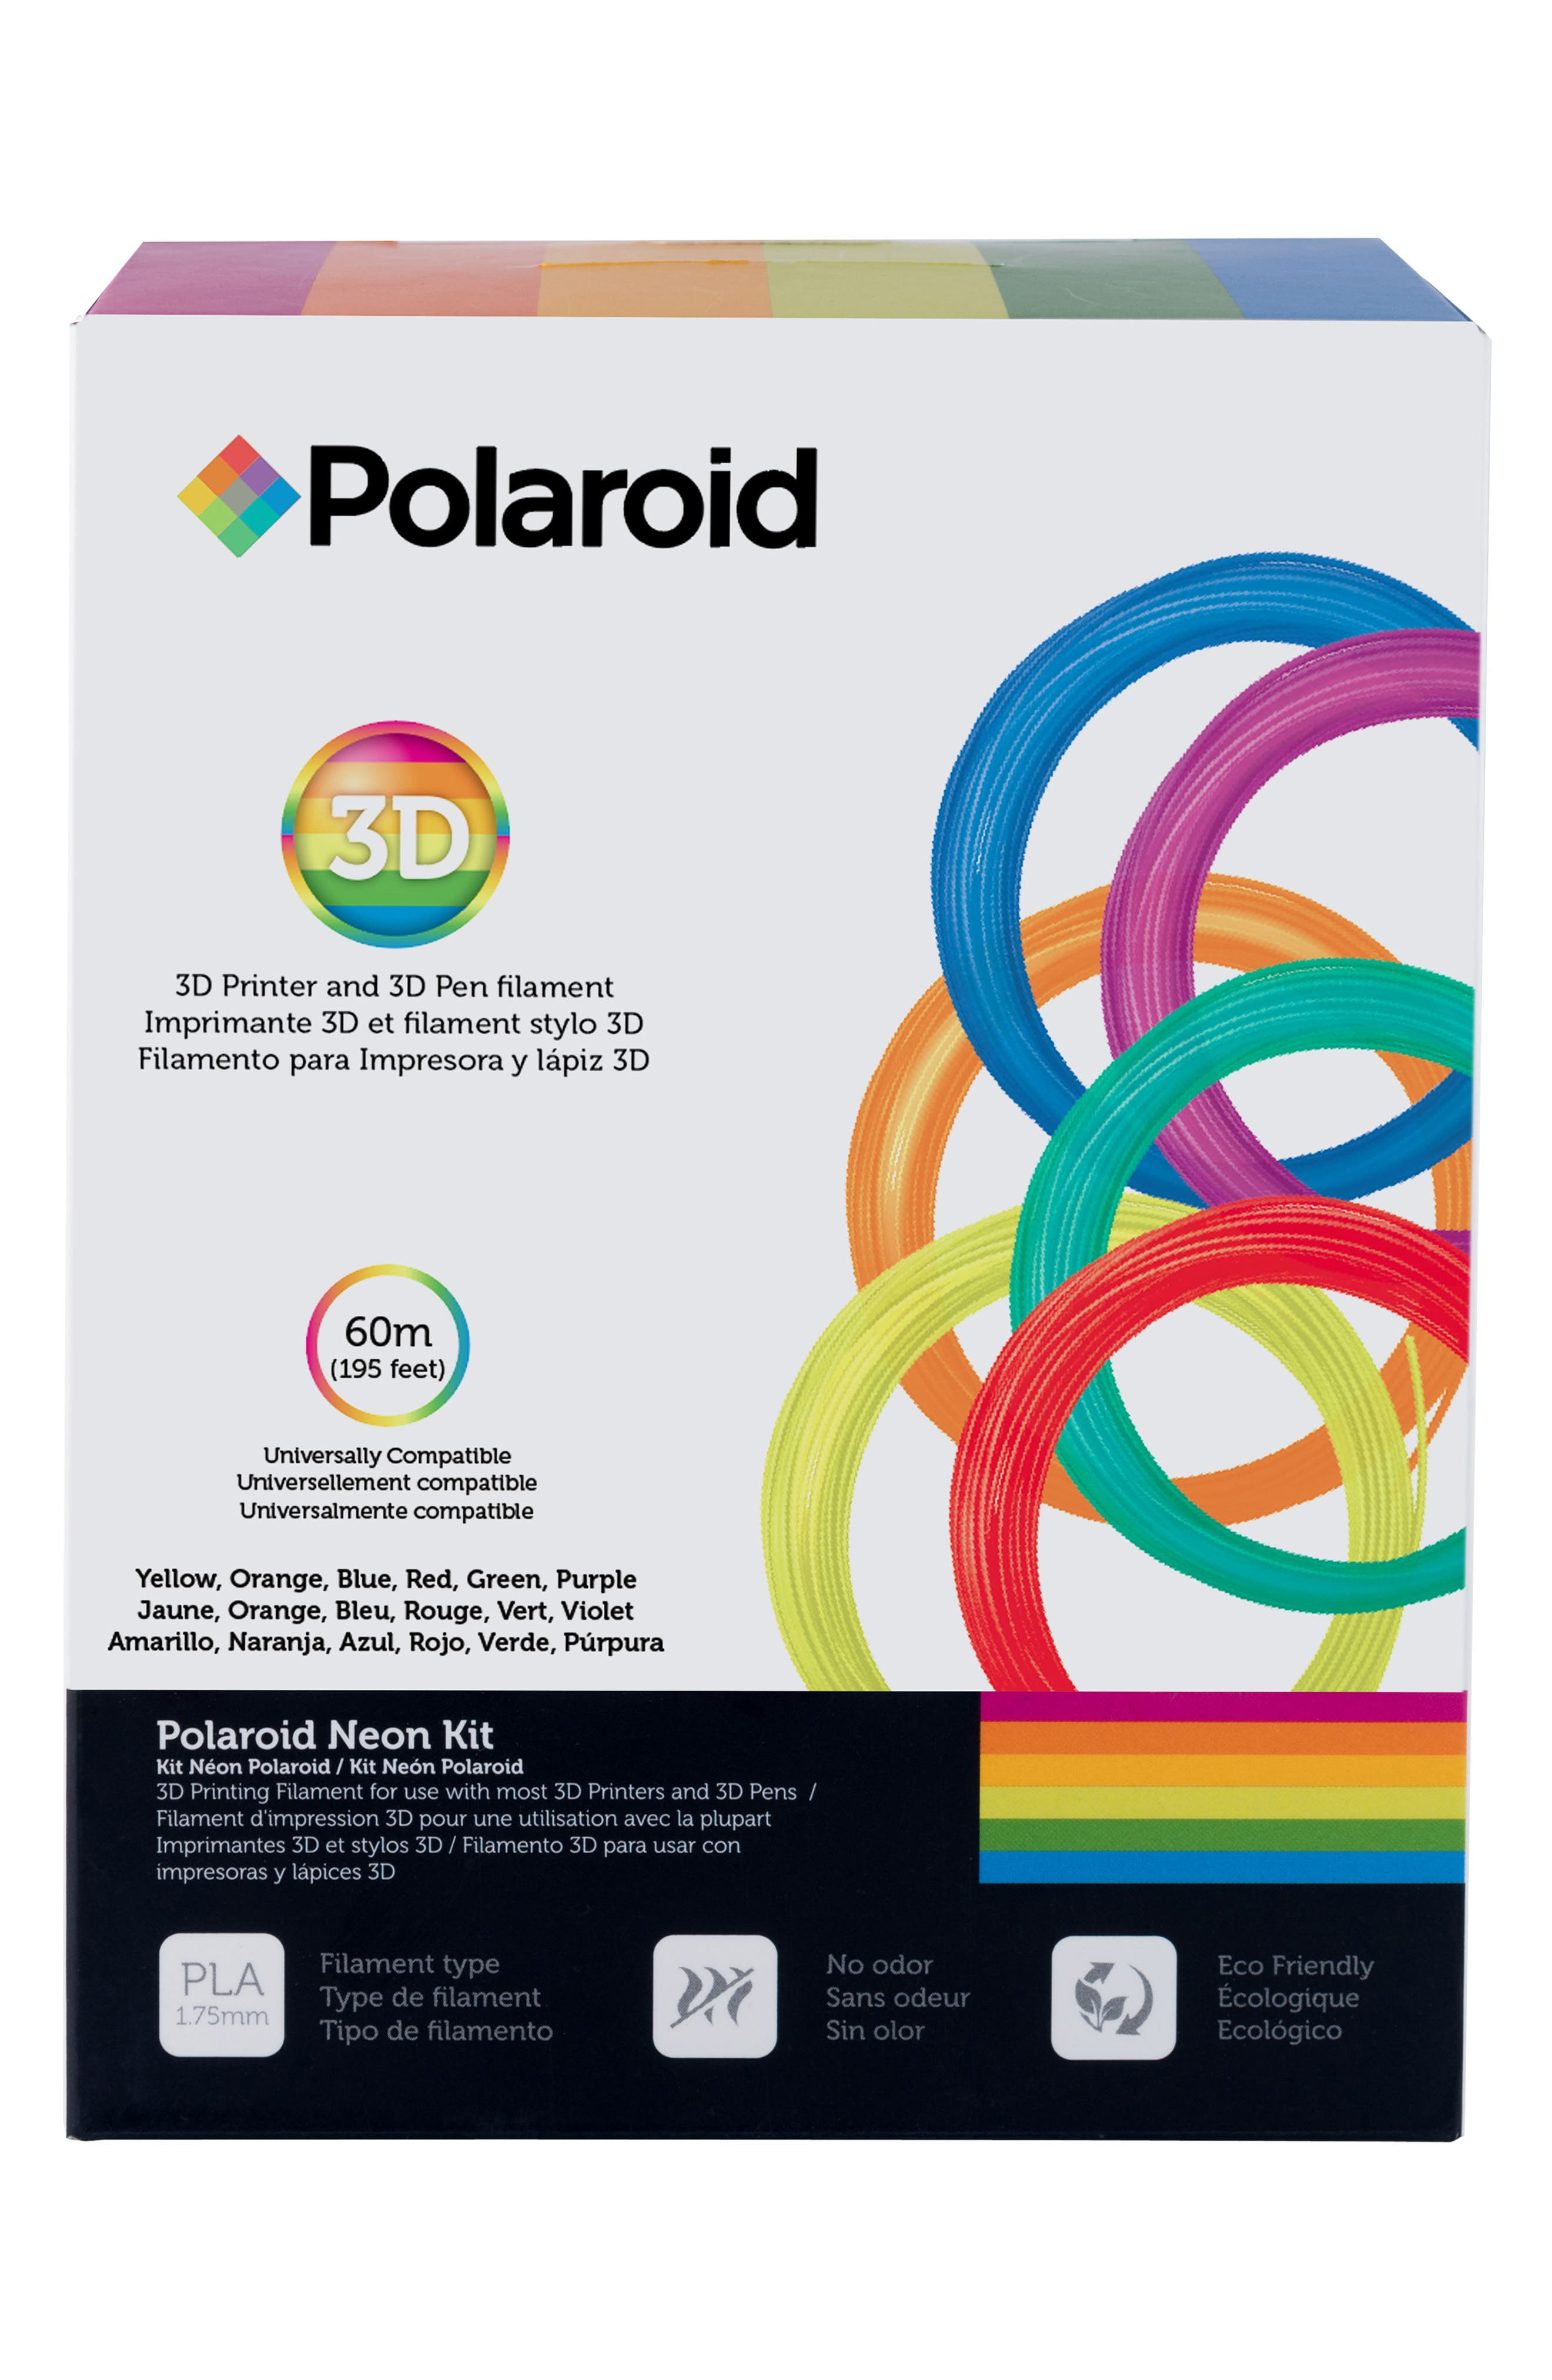 Polaroid 3D Neon Filament Kit